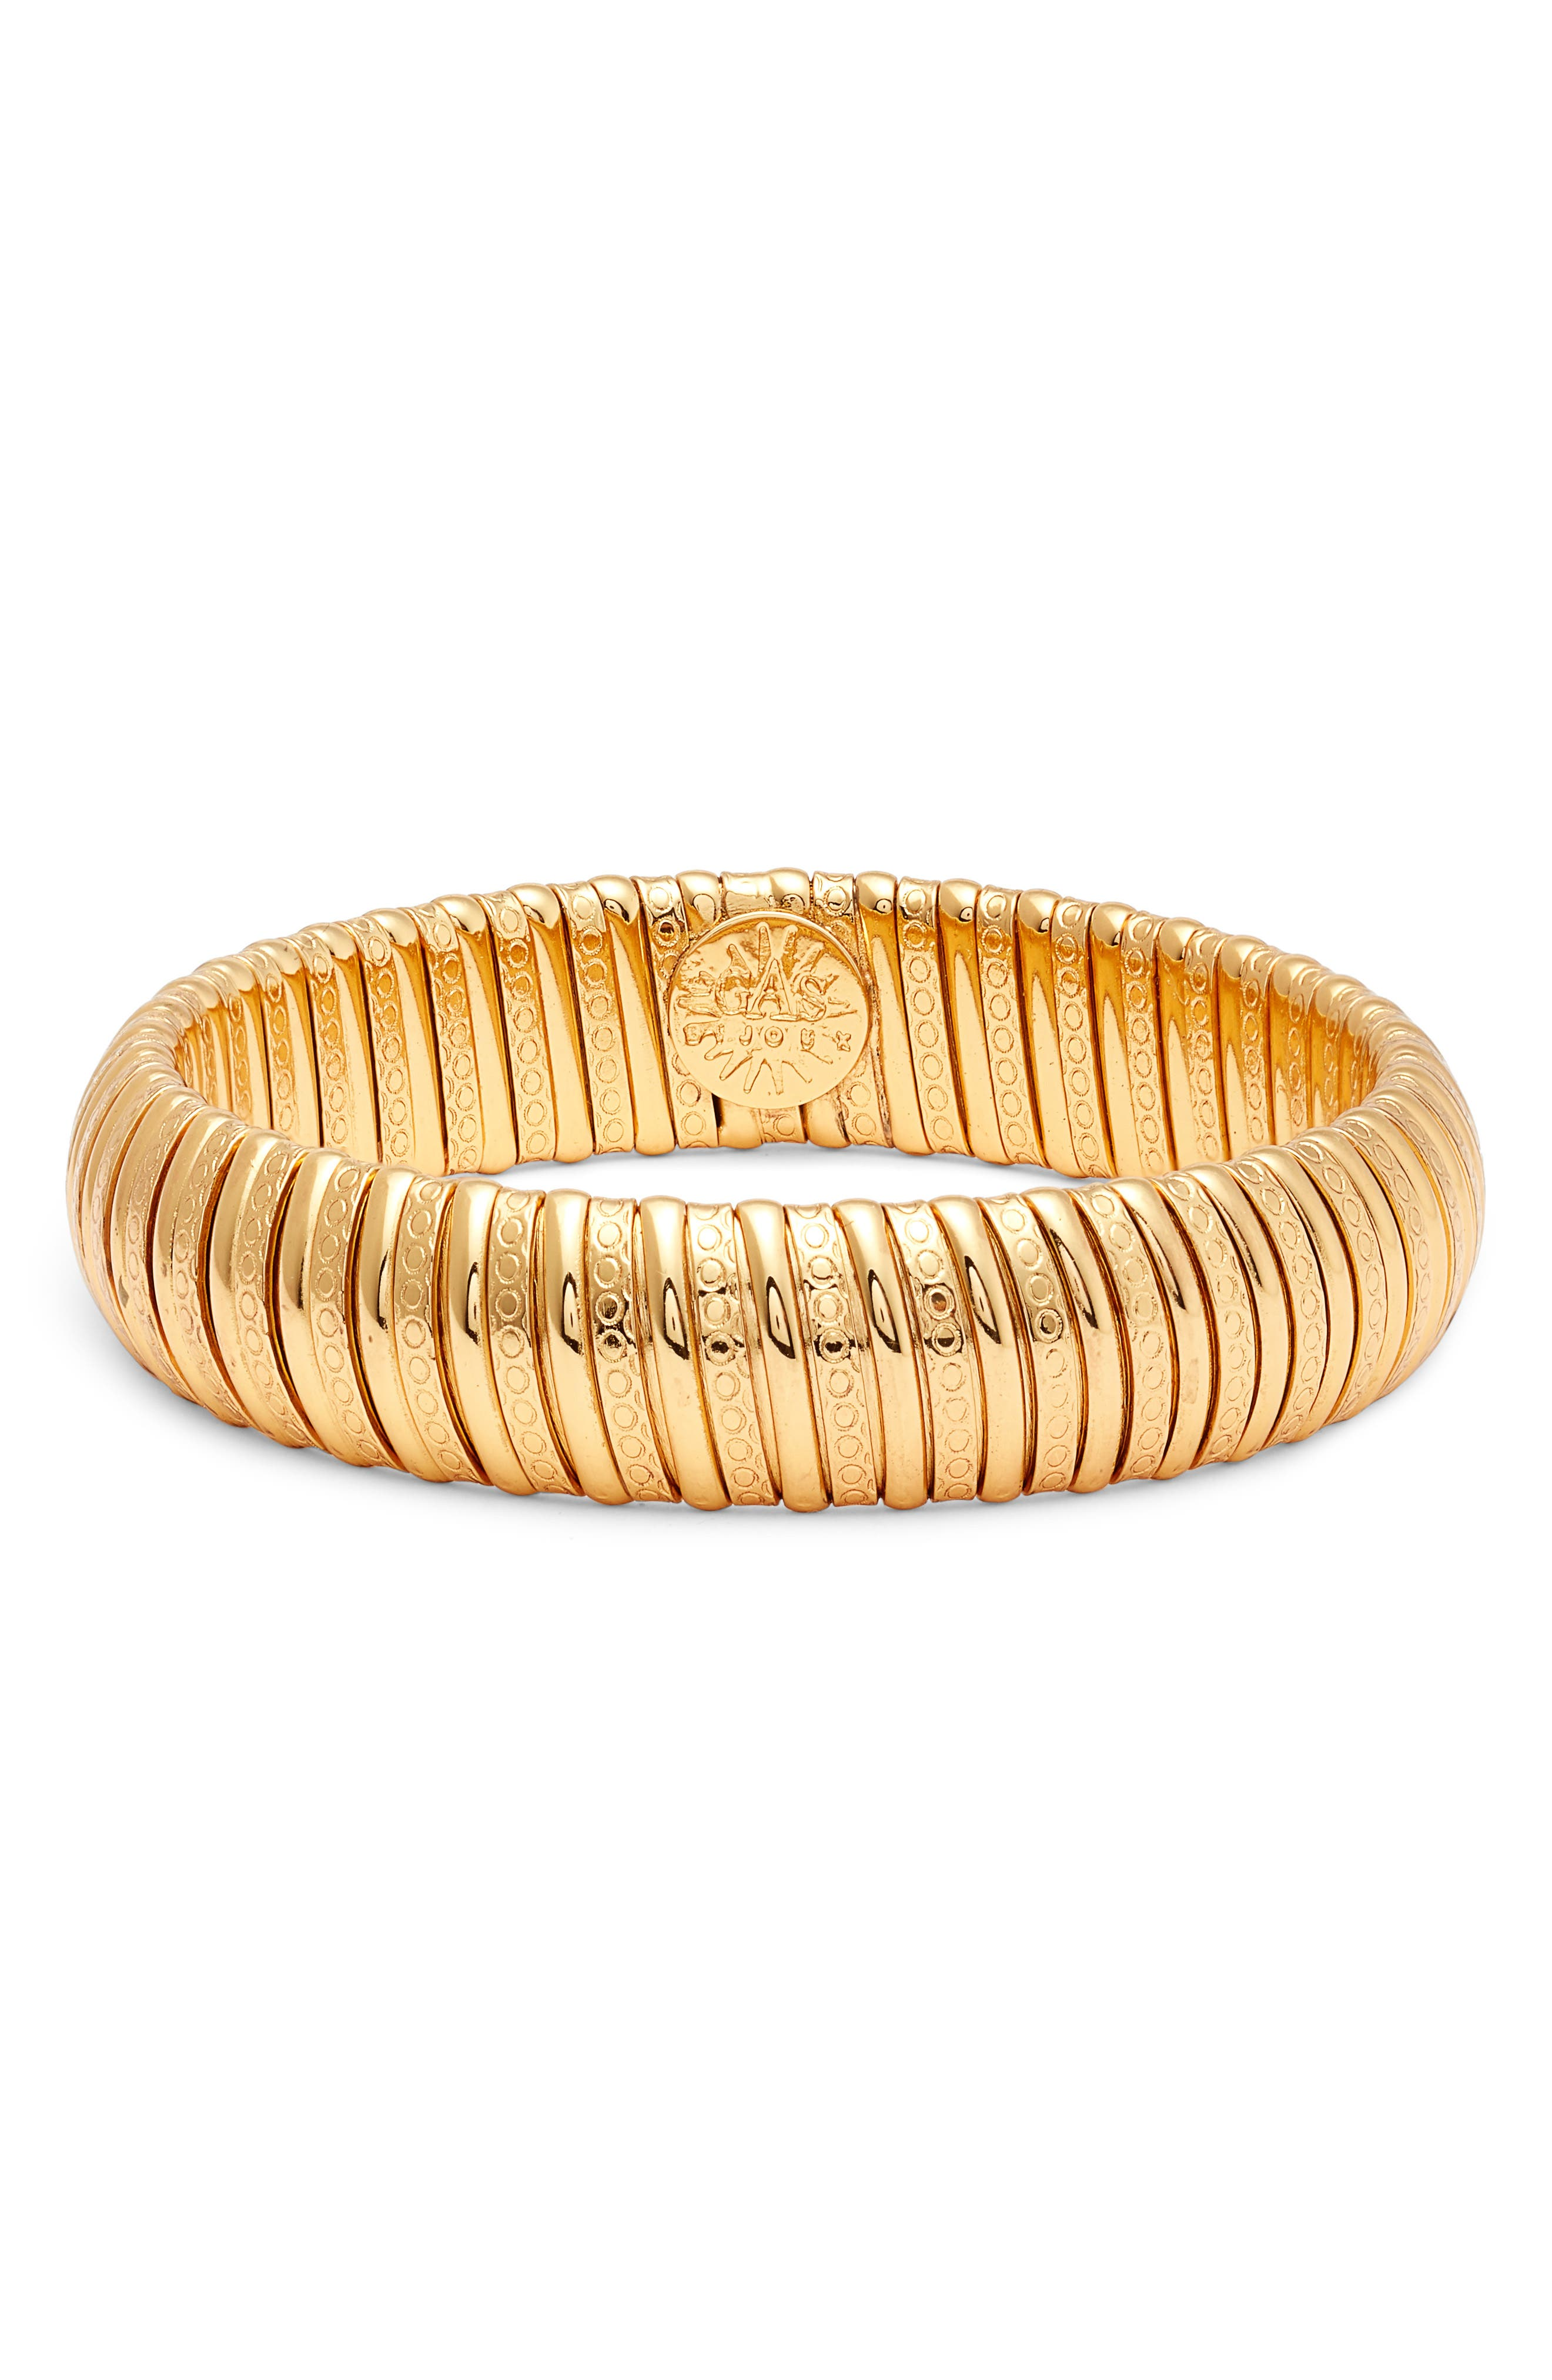 Breva Bangle Bracelet,                         Main,                         color, Gold